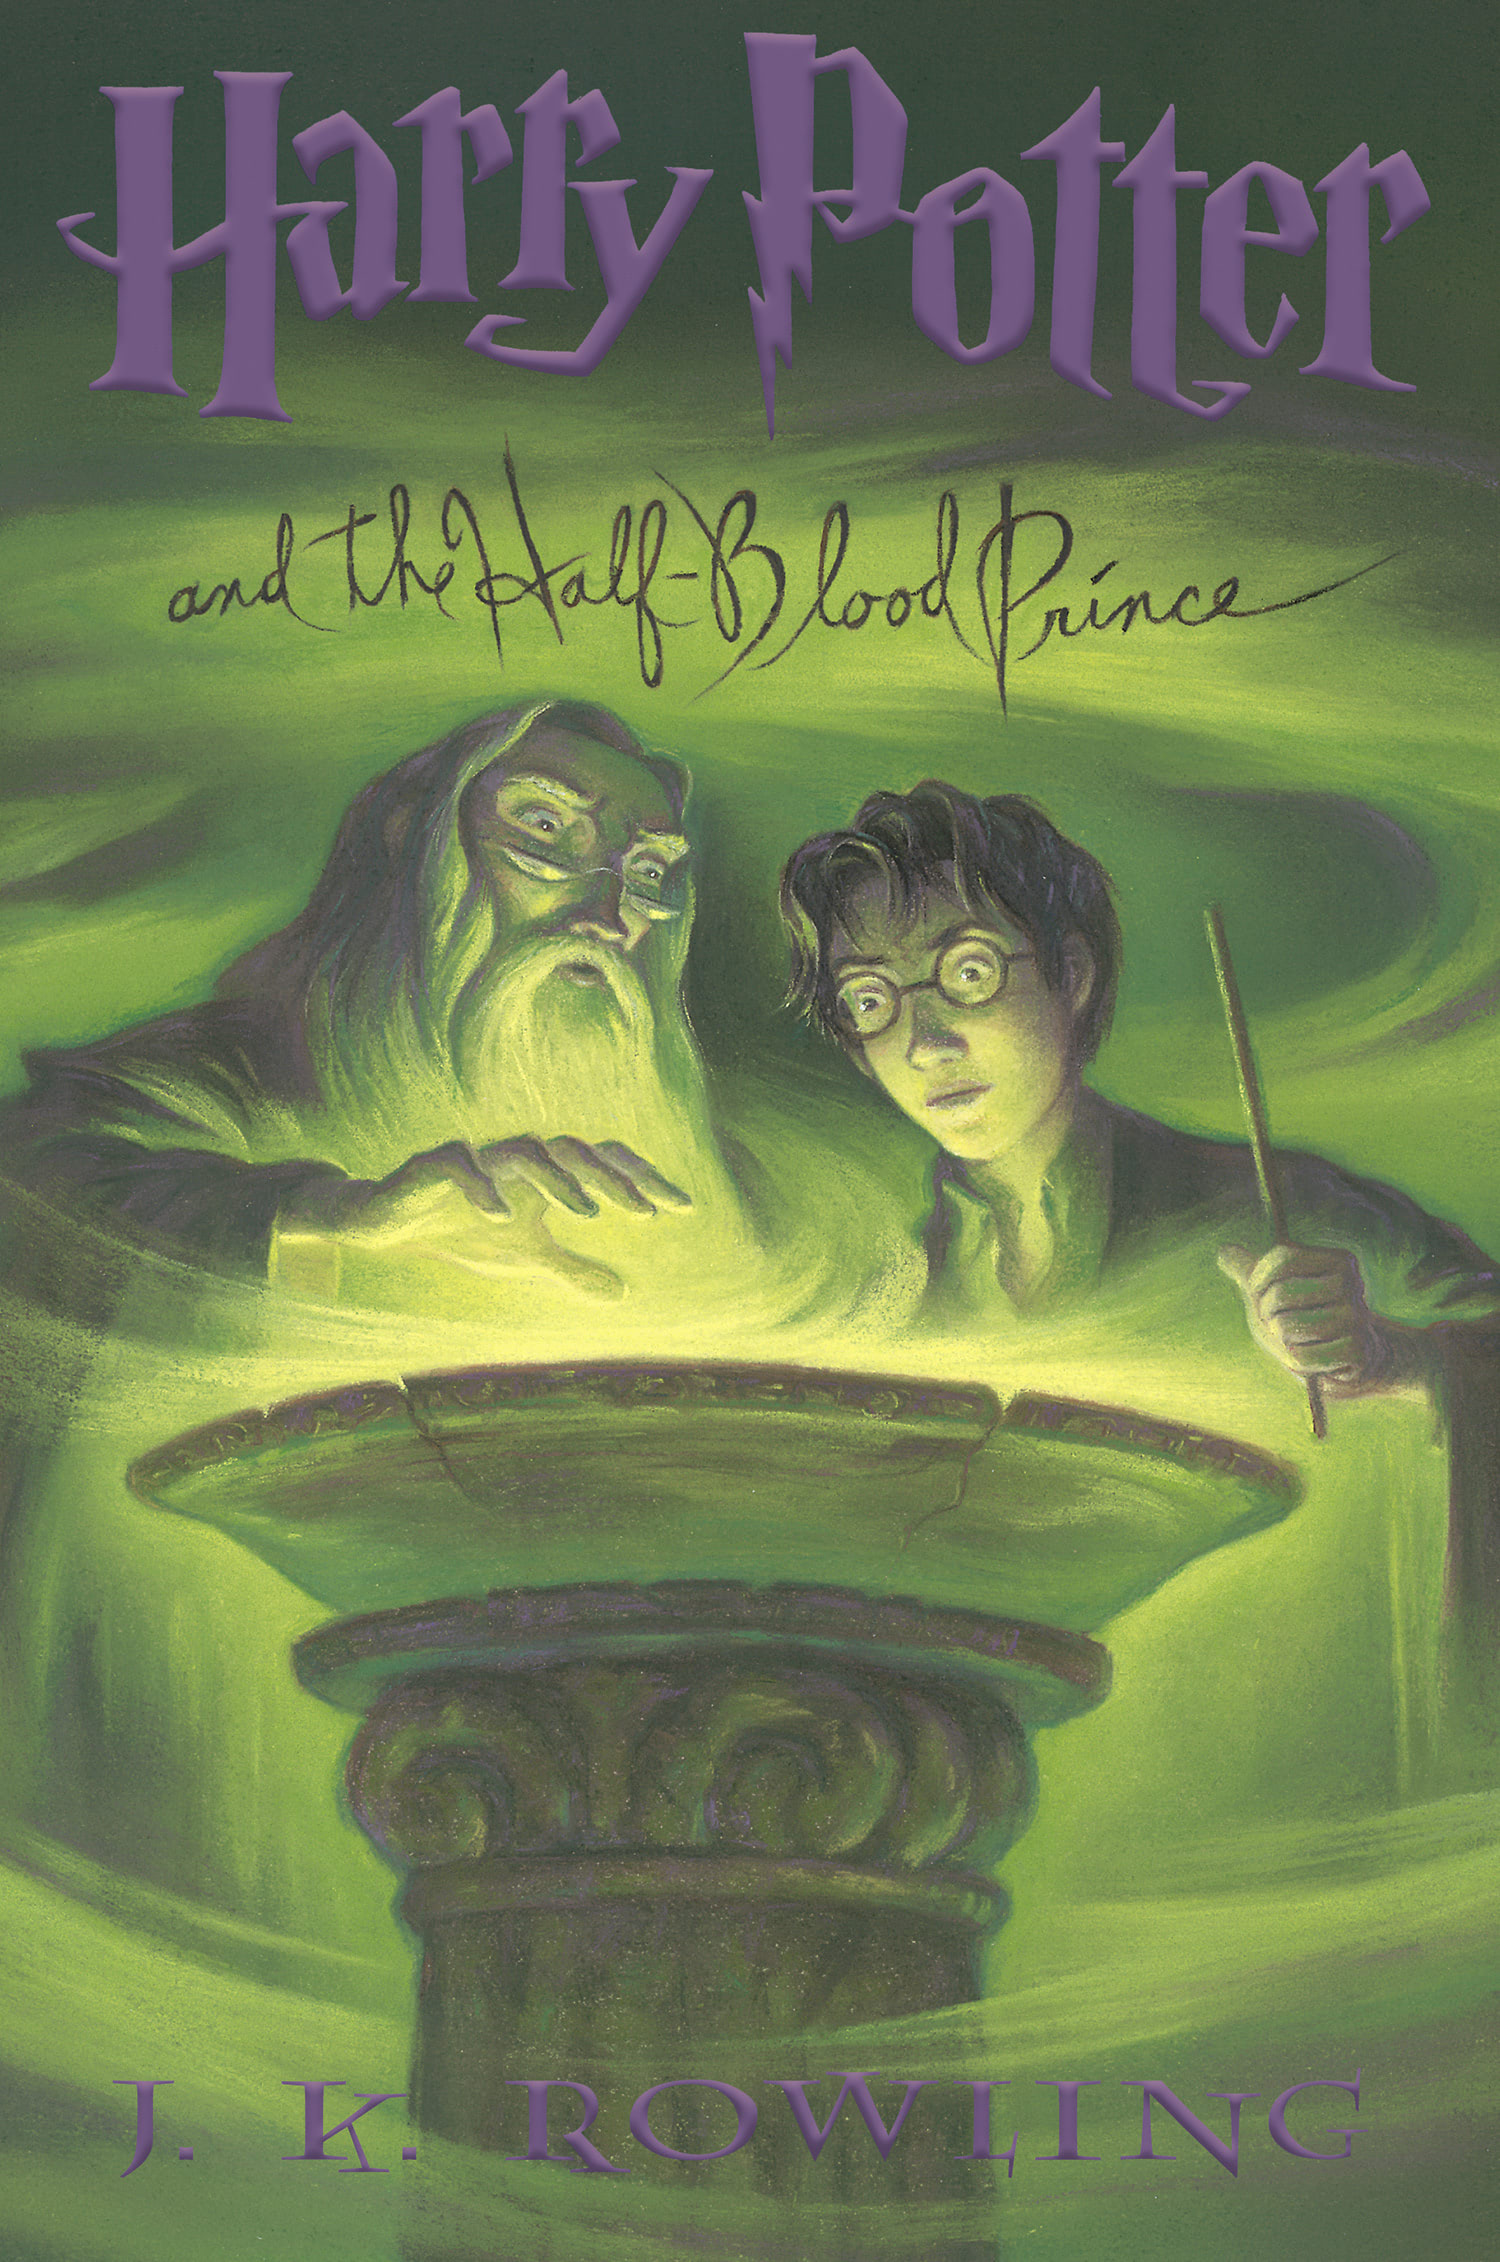 'Half-Blood Prince' US children's edition